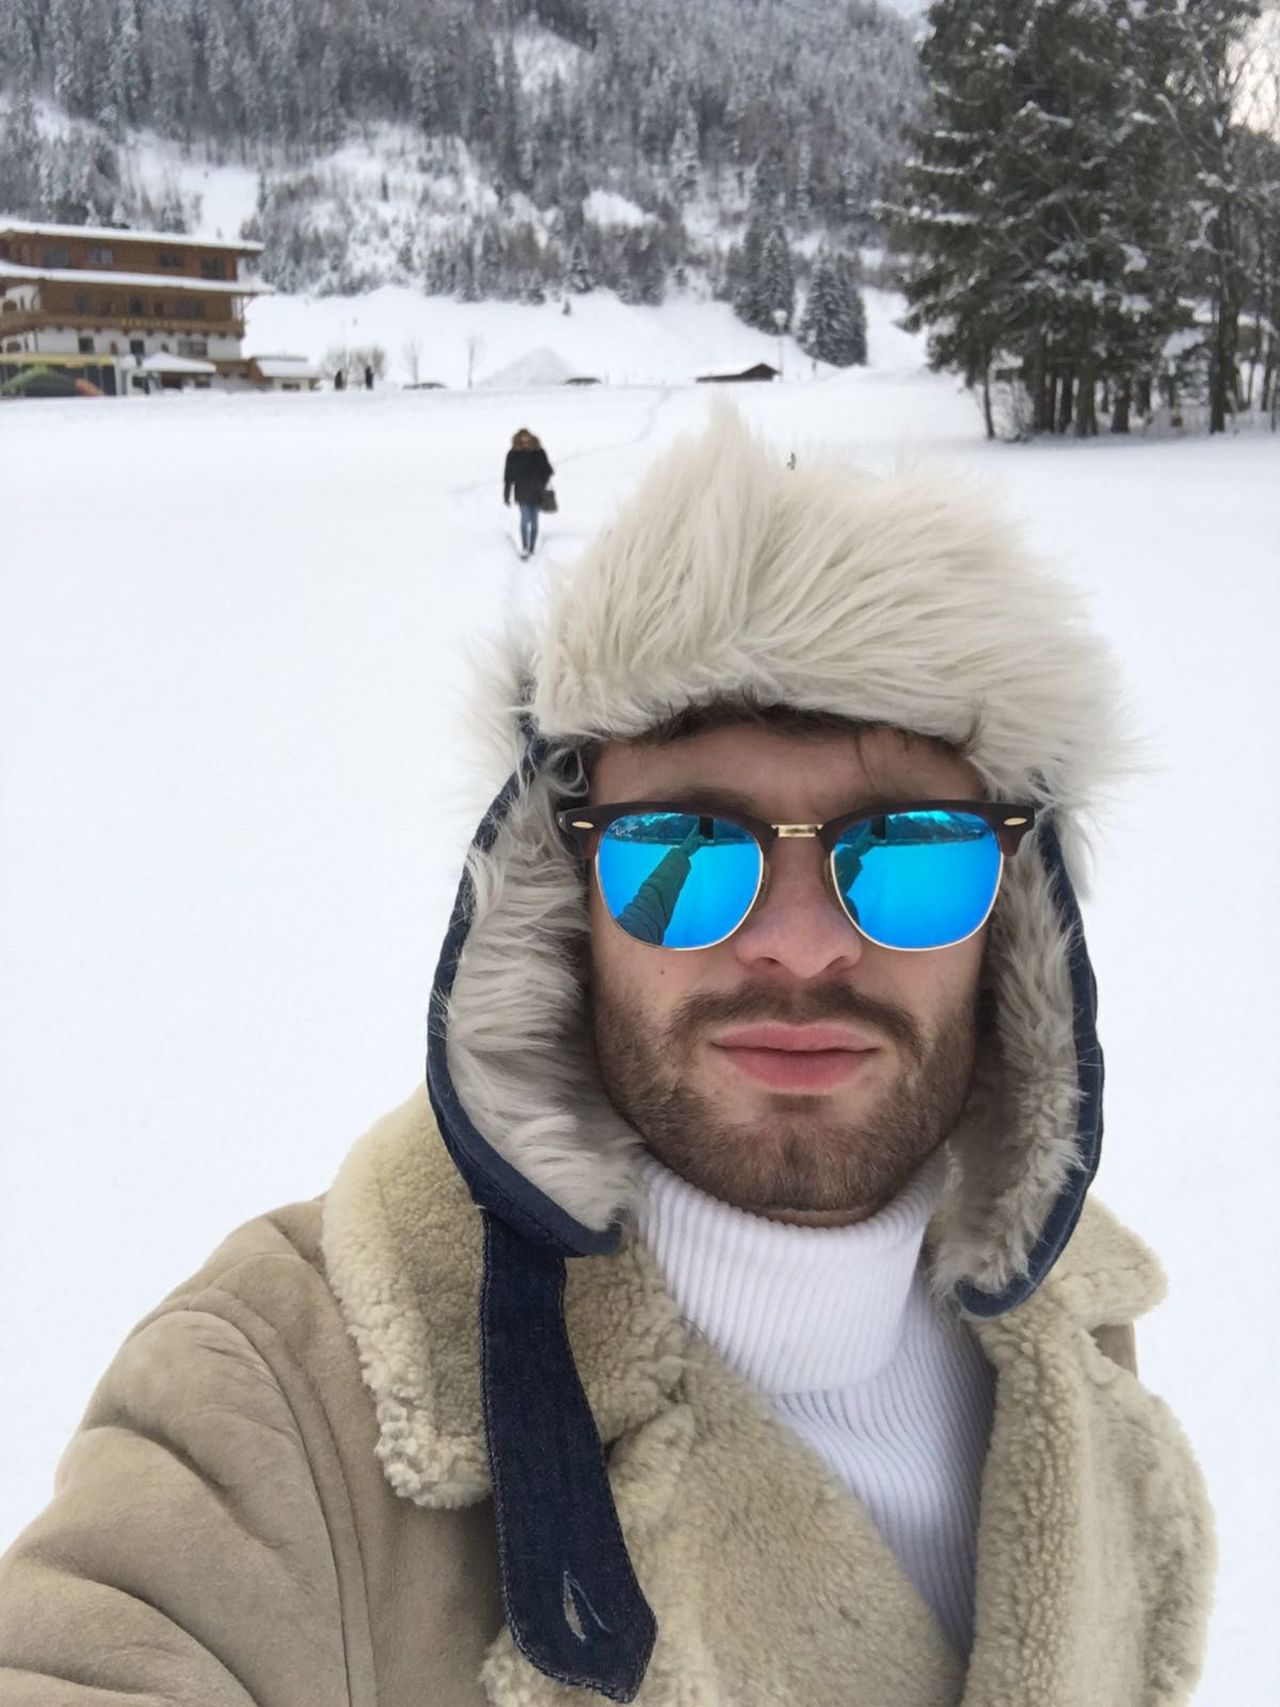 Winter Snow Cold Temperature Outdoors Mensfashion Sunglasses Reflection One PersonWarm Clothing White Selfıe Holiday My Son ❤